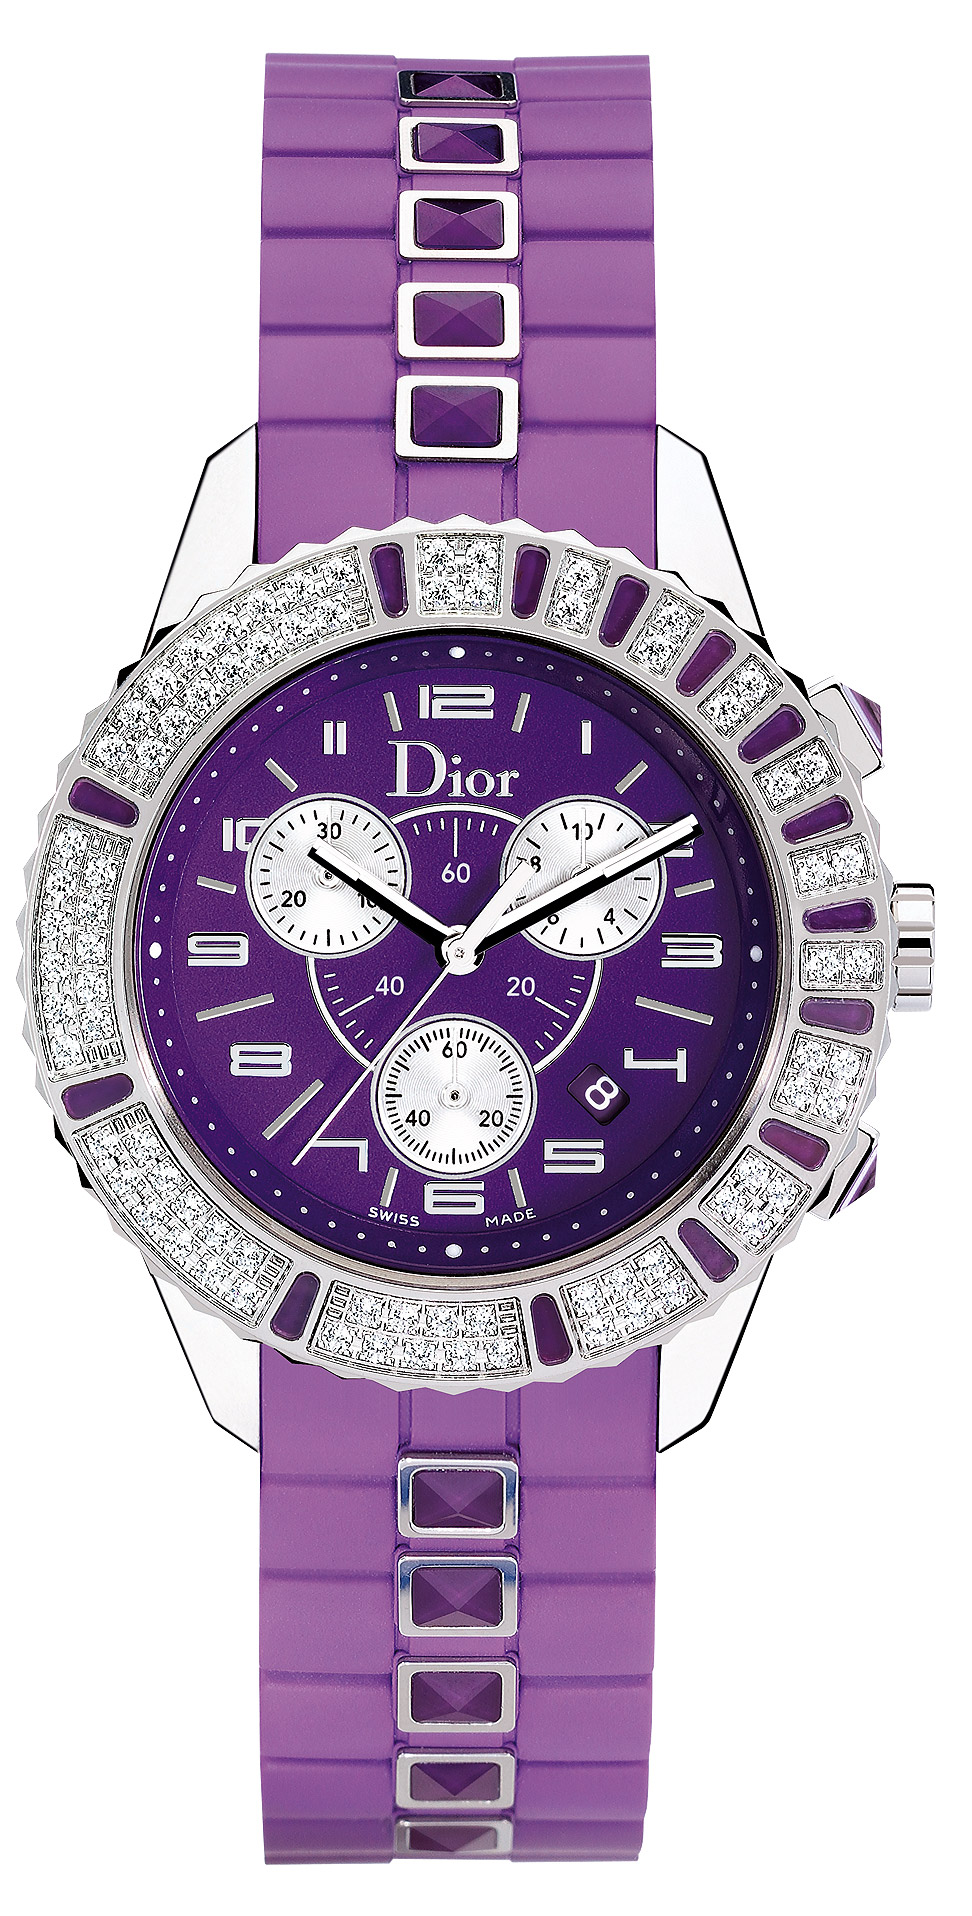 Christian dior christal chronograph ladies watch model cd11431jr001 for Christian dior watches